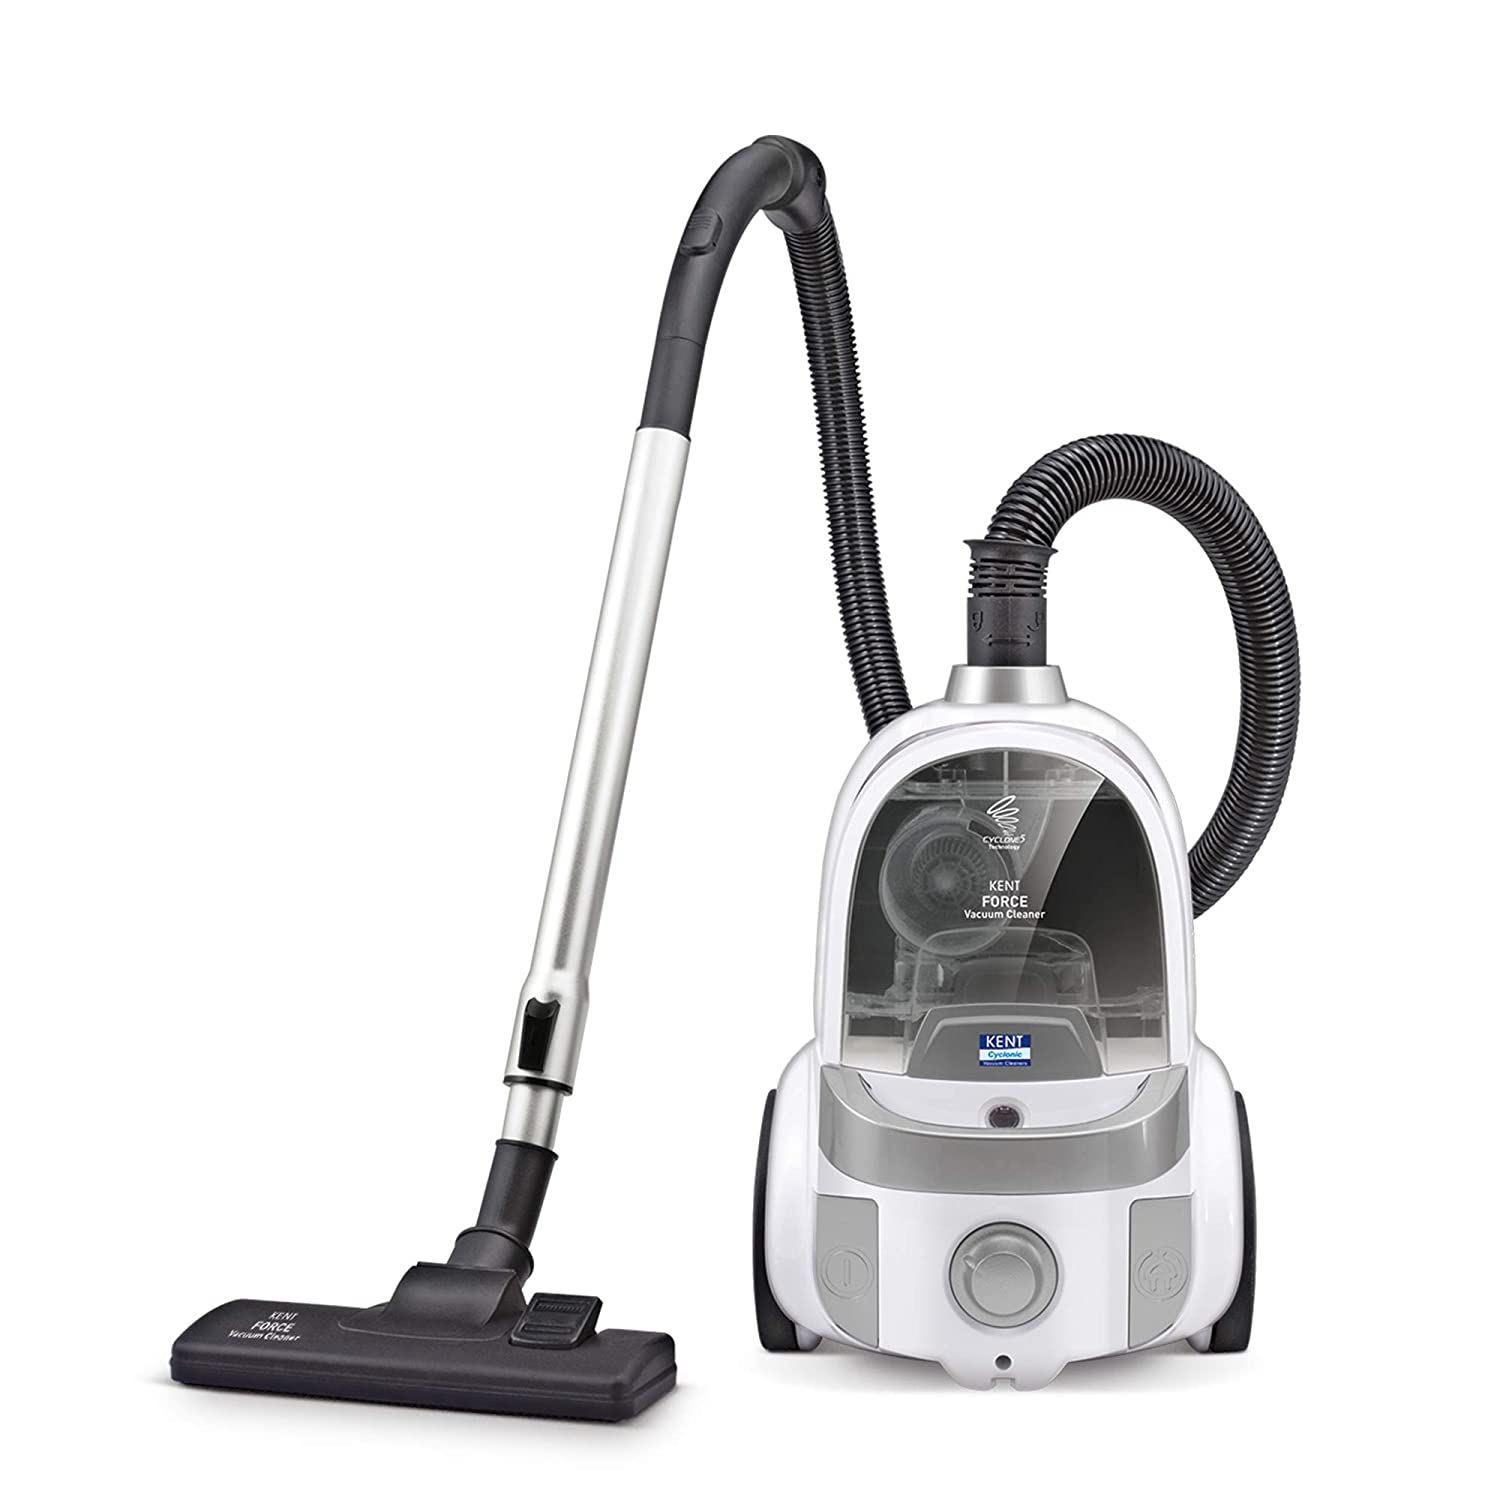 Refurbished Kent Force Cyclonic Vacuum Cleaner 2000-Watt (White and Silver) kida.in